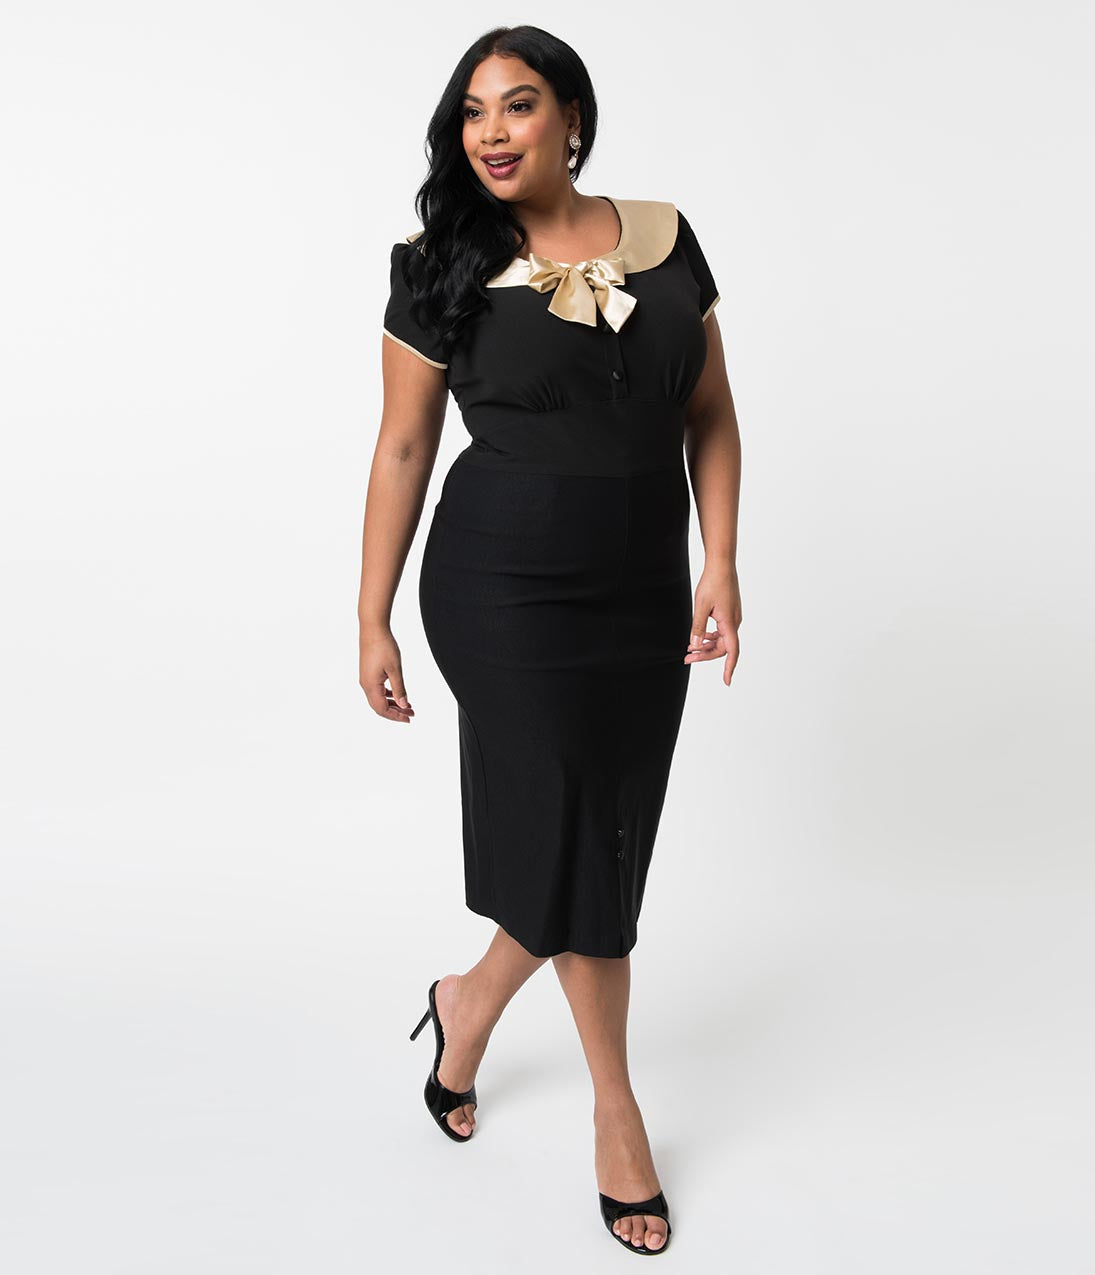 1940s Plus Size Fashion: Style Advice from 1940s to Today Stop Staring Plus Size 1940S Style Black  Cream Bow Von Sweet Wiggle Dress $118.00 AT vintagedancer.com